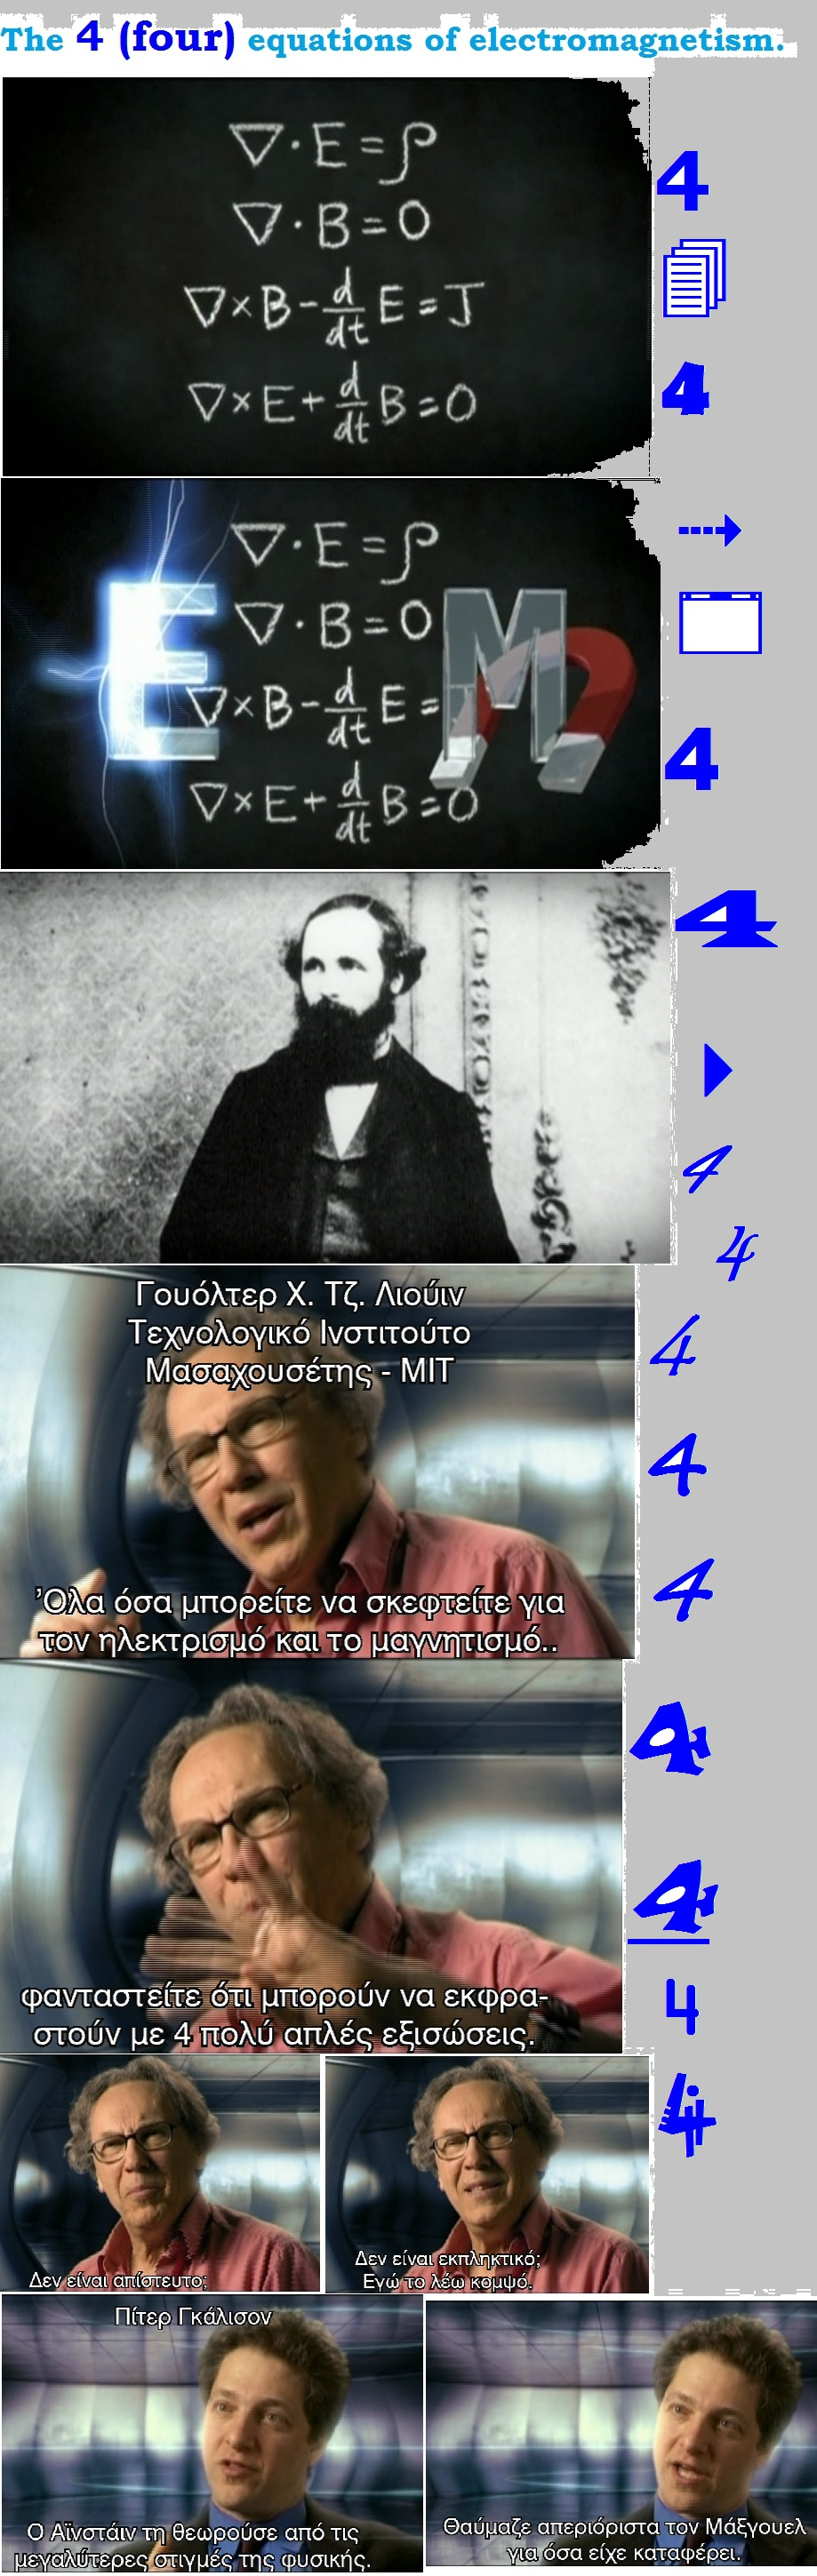 The four equations of electromagnetism 01 010913